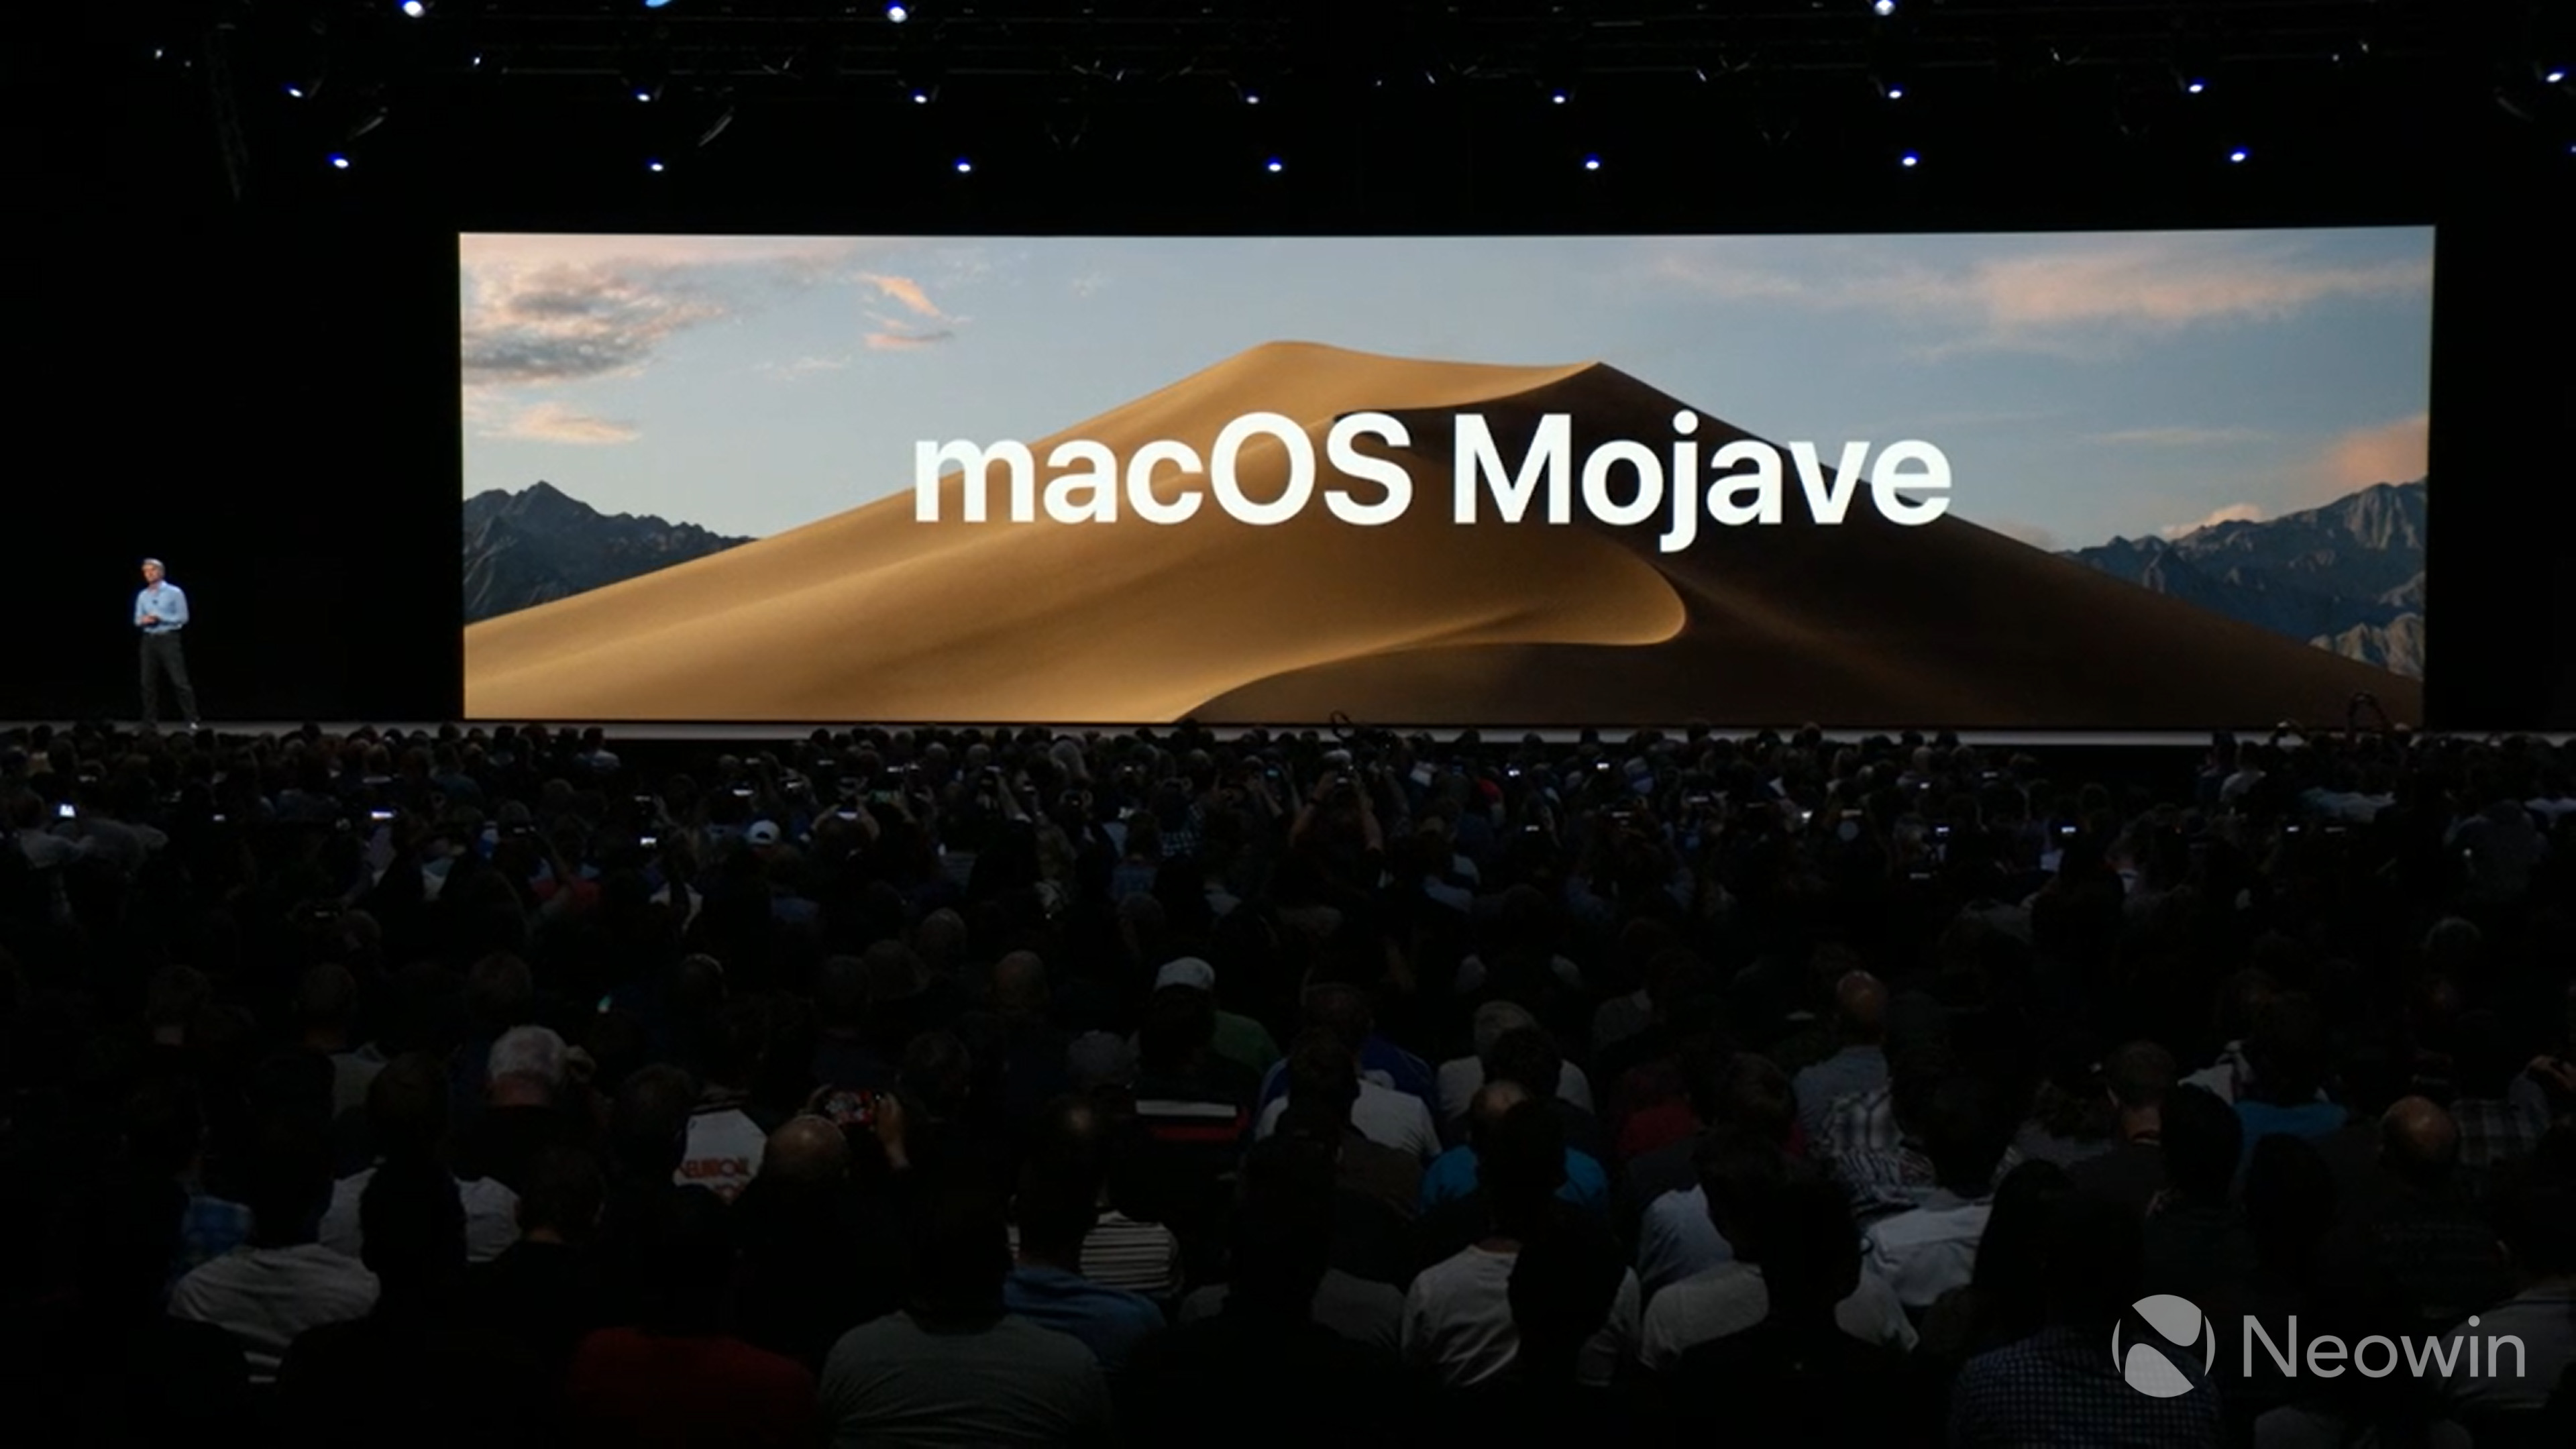 macOS Mojave 10 14 4 is now available with Apple News+ support